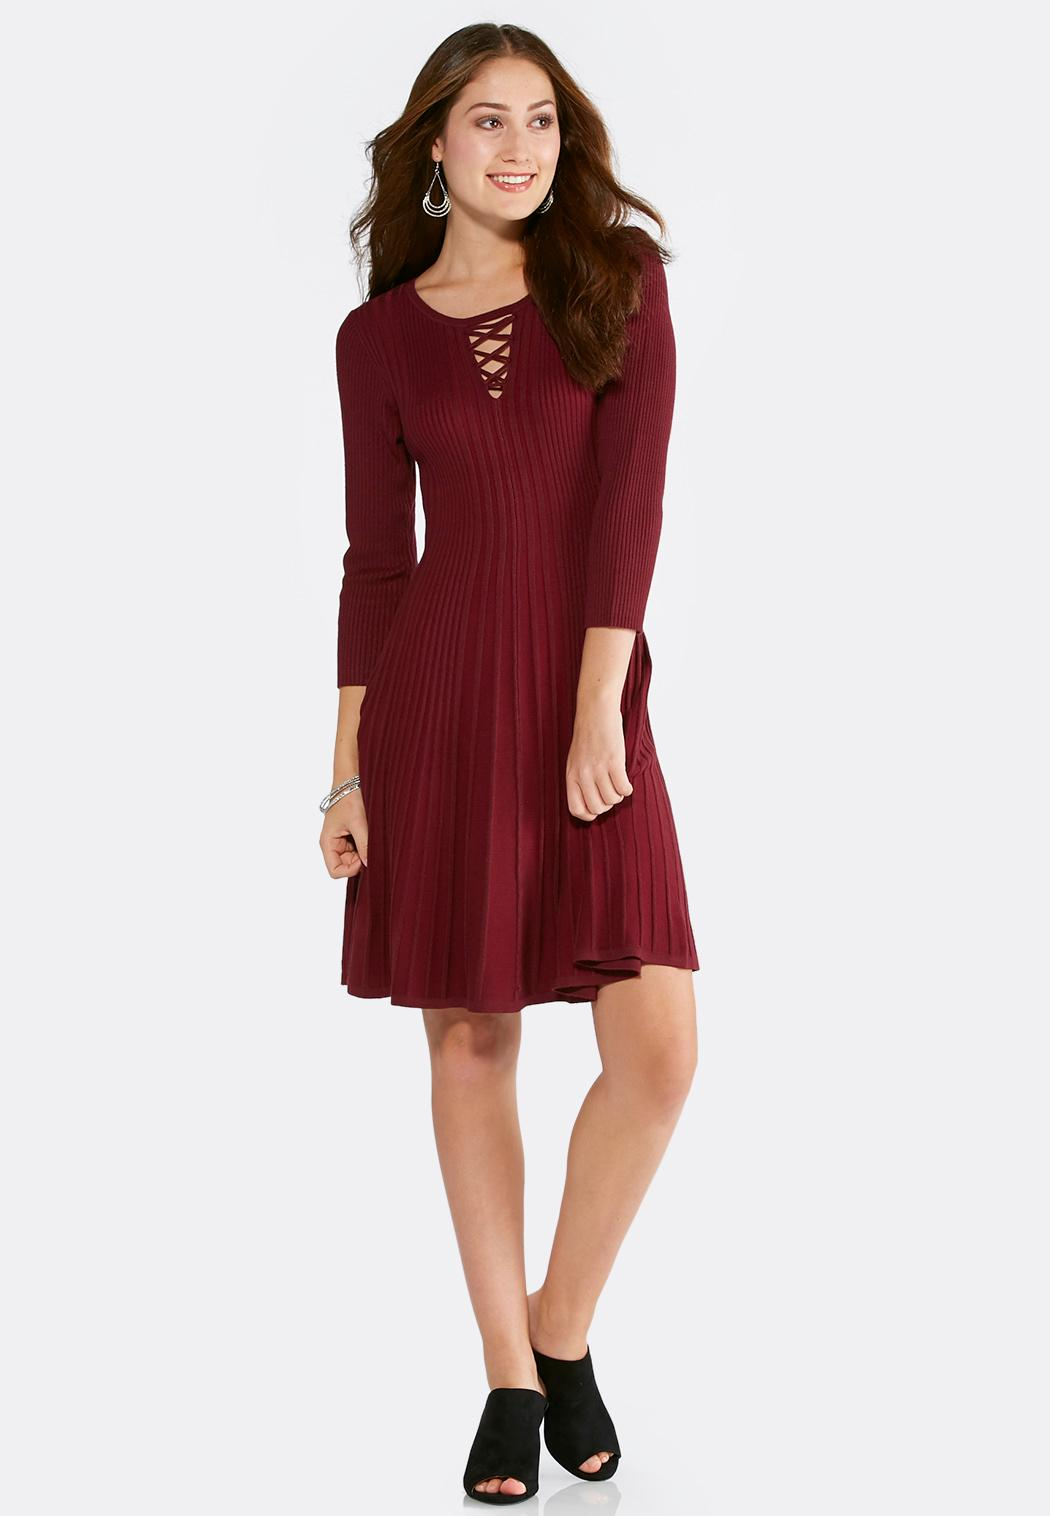 Plus Size Lace Up Sweater Dress Plus Sizes Cato Fashions